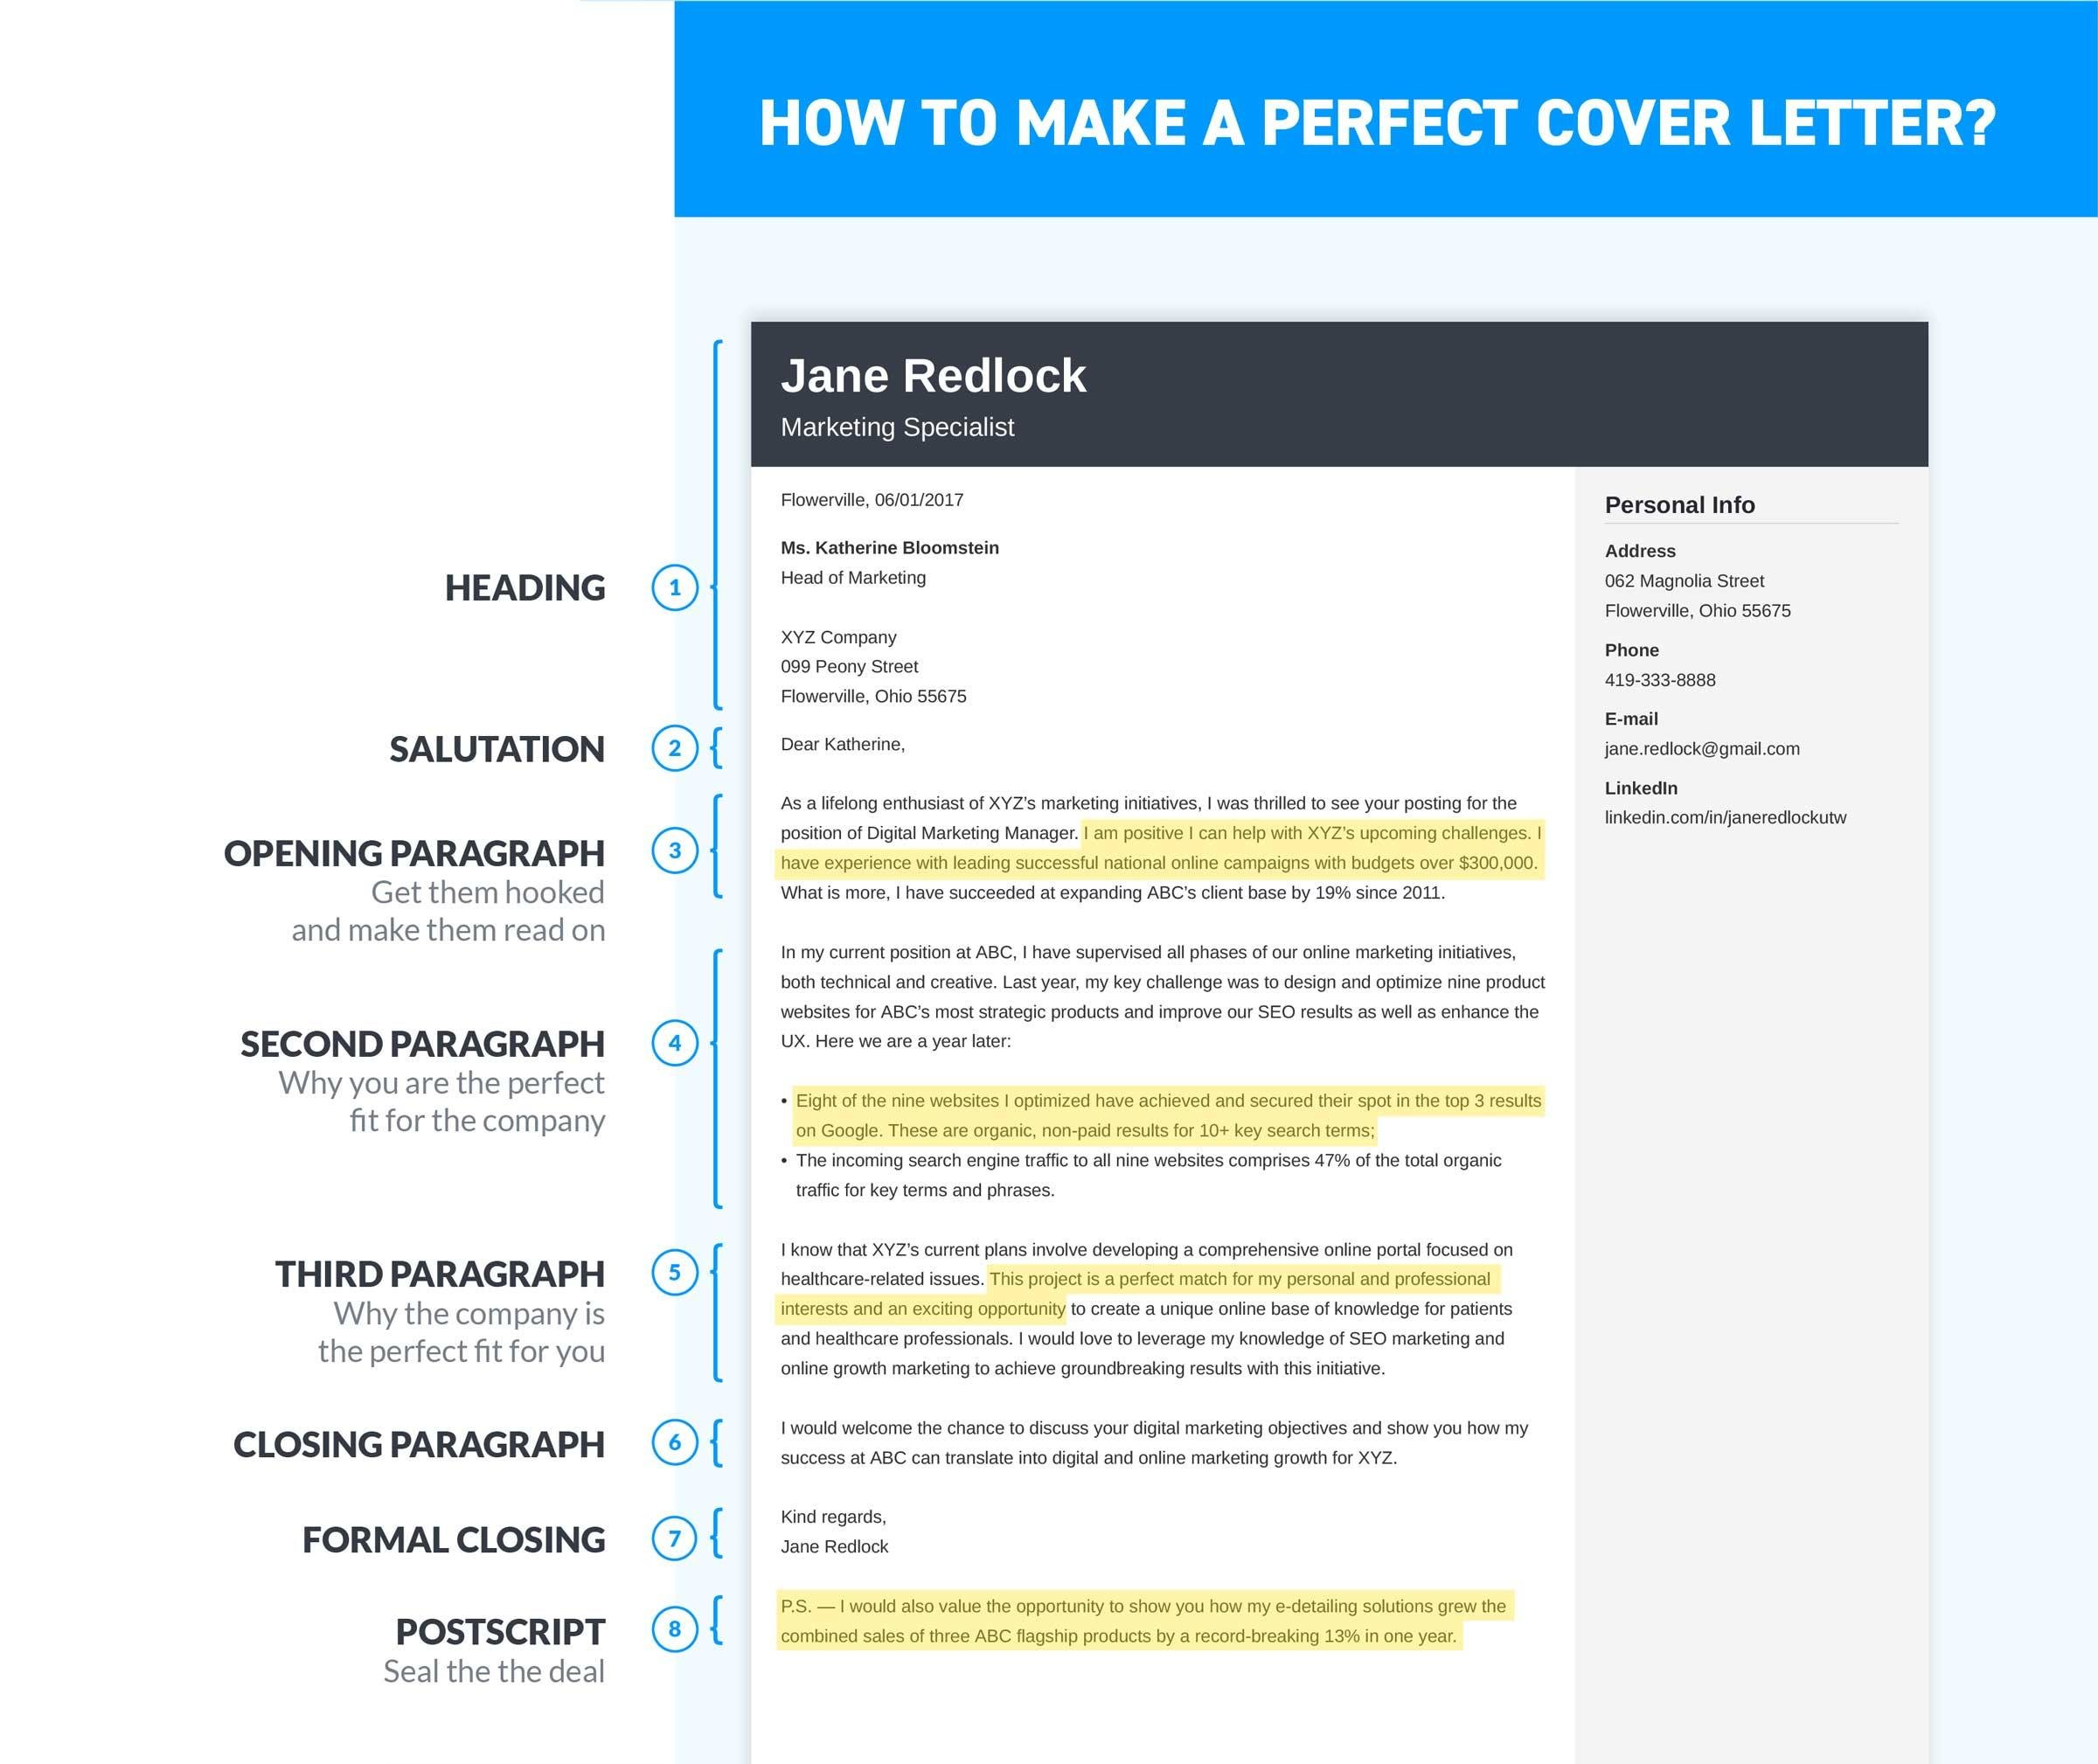 What Should Be In A Resume Cover Letter what should a resume cover letter consis unique what should a resume cover letter consist of How To Make A Perfect Cover Letter Infographic